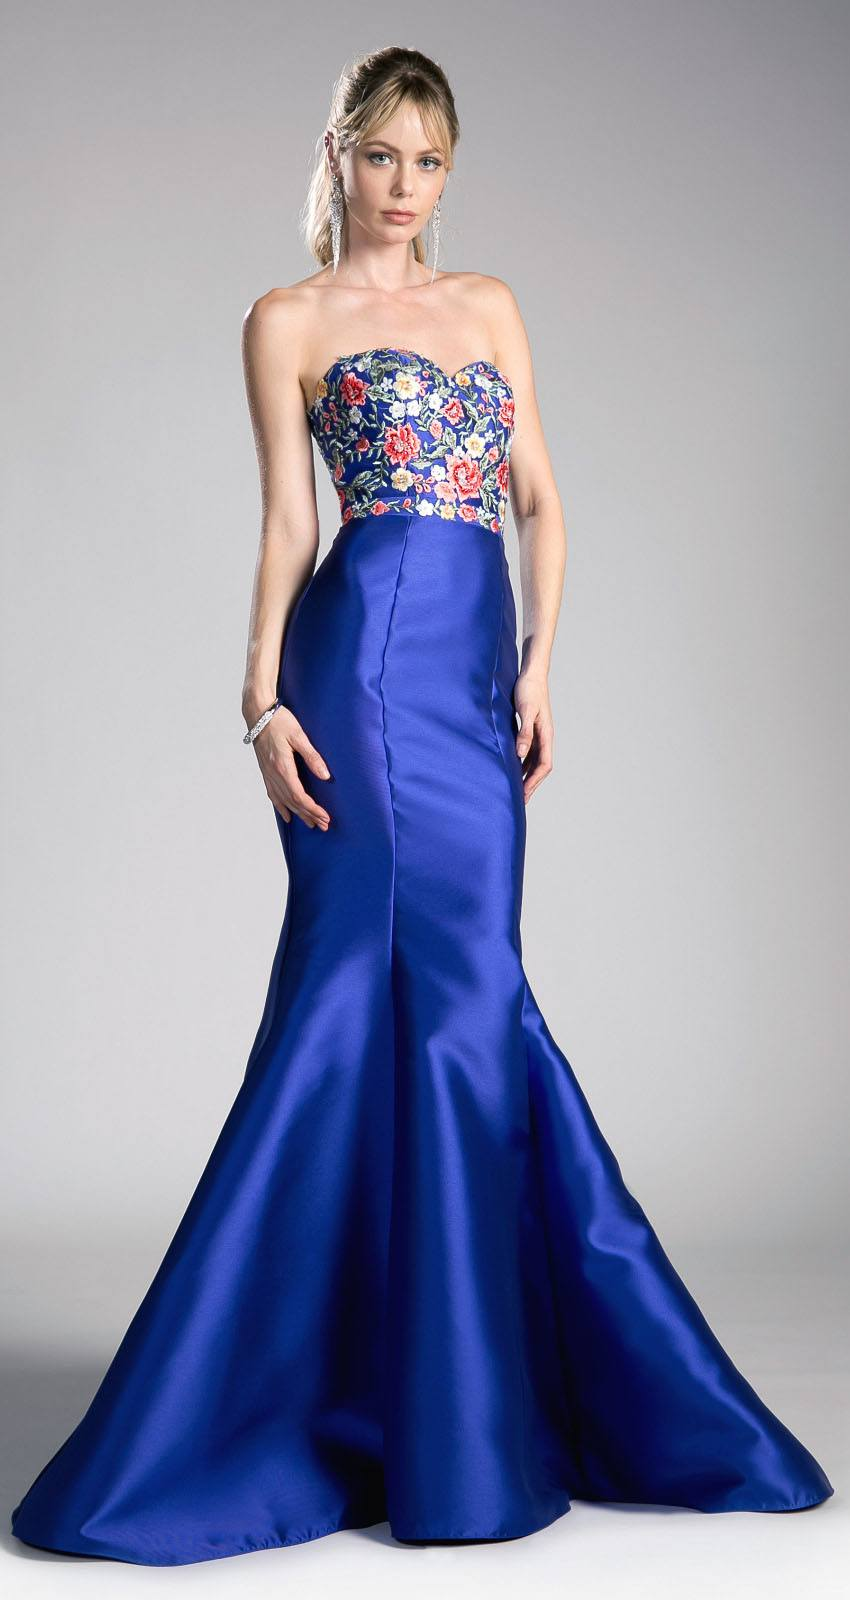 503ecba157d Royal Blue Strapless Long Prom Dress Embroidered Bodice. Tap to expand